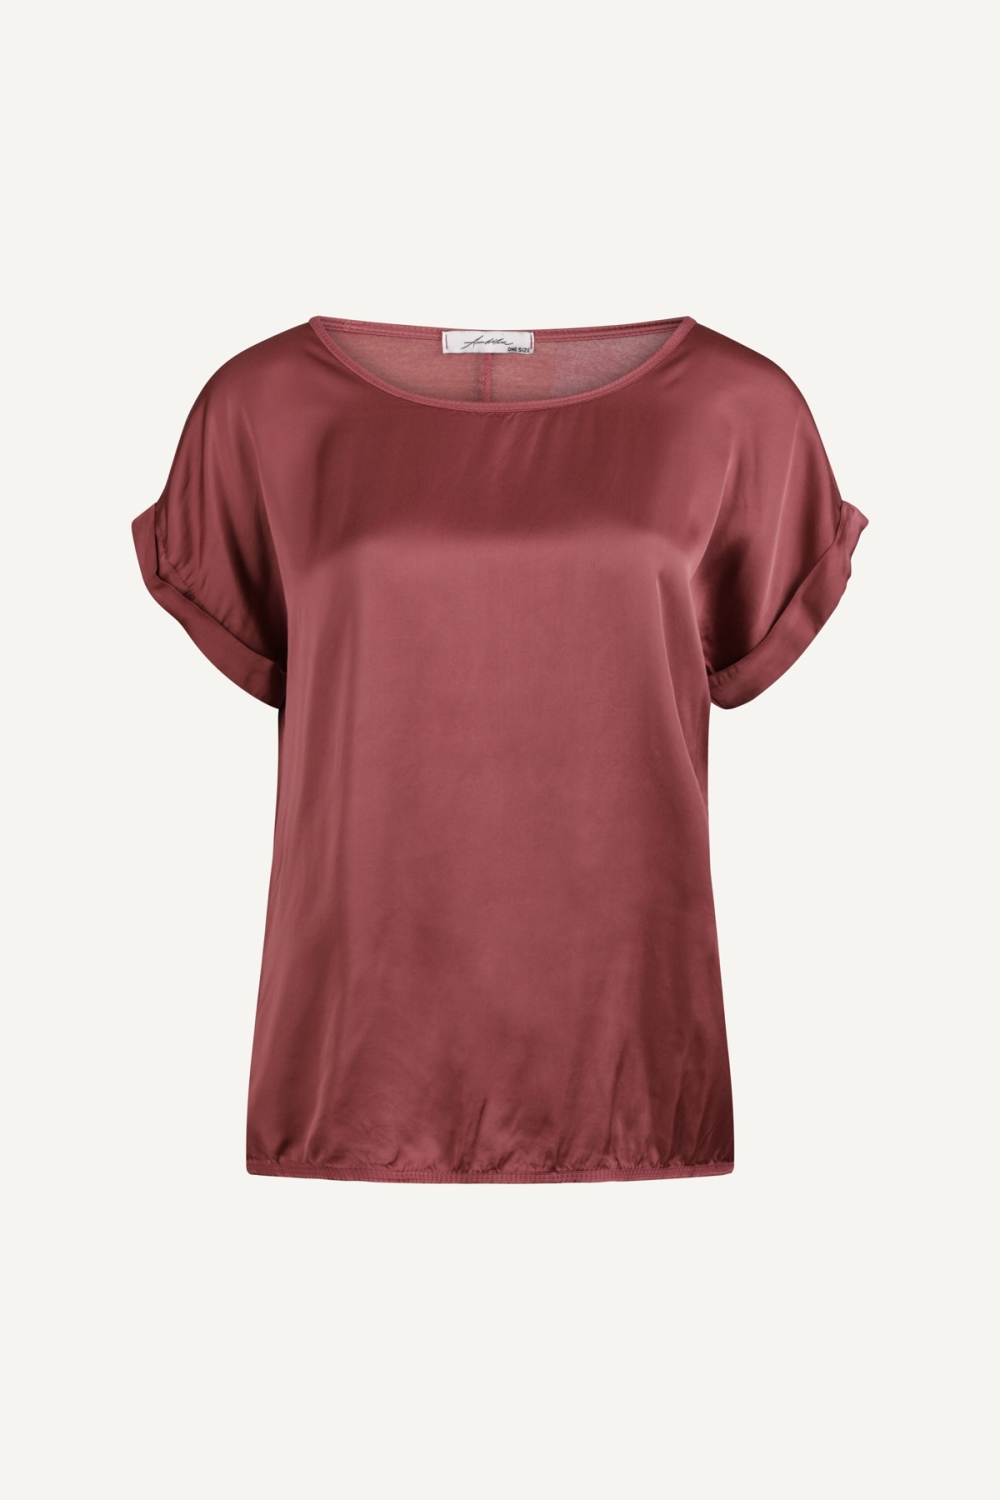 Ambika Shirt / Top Bordeaux 33171